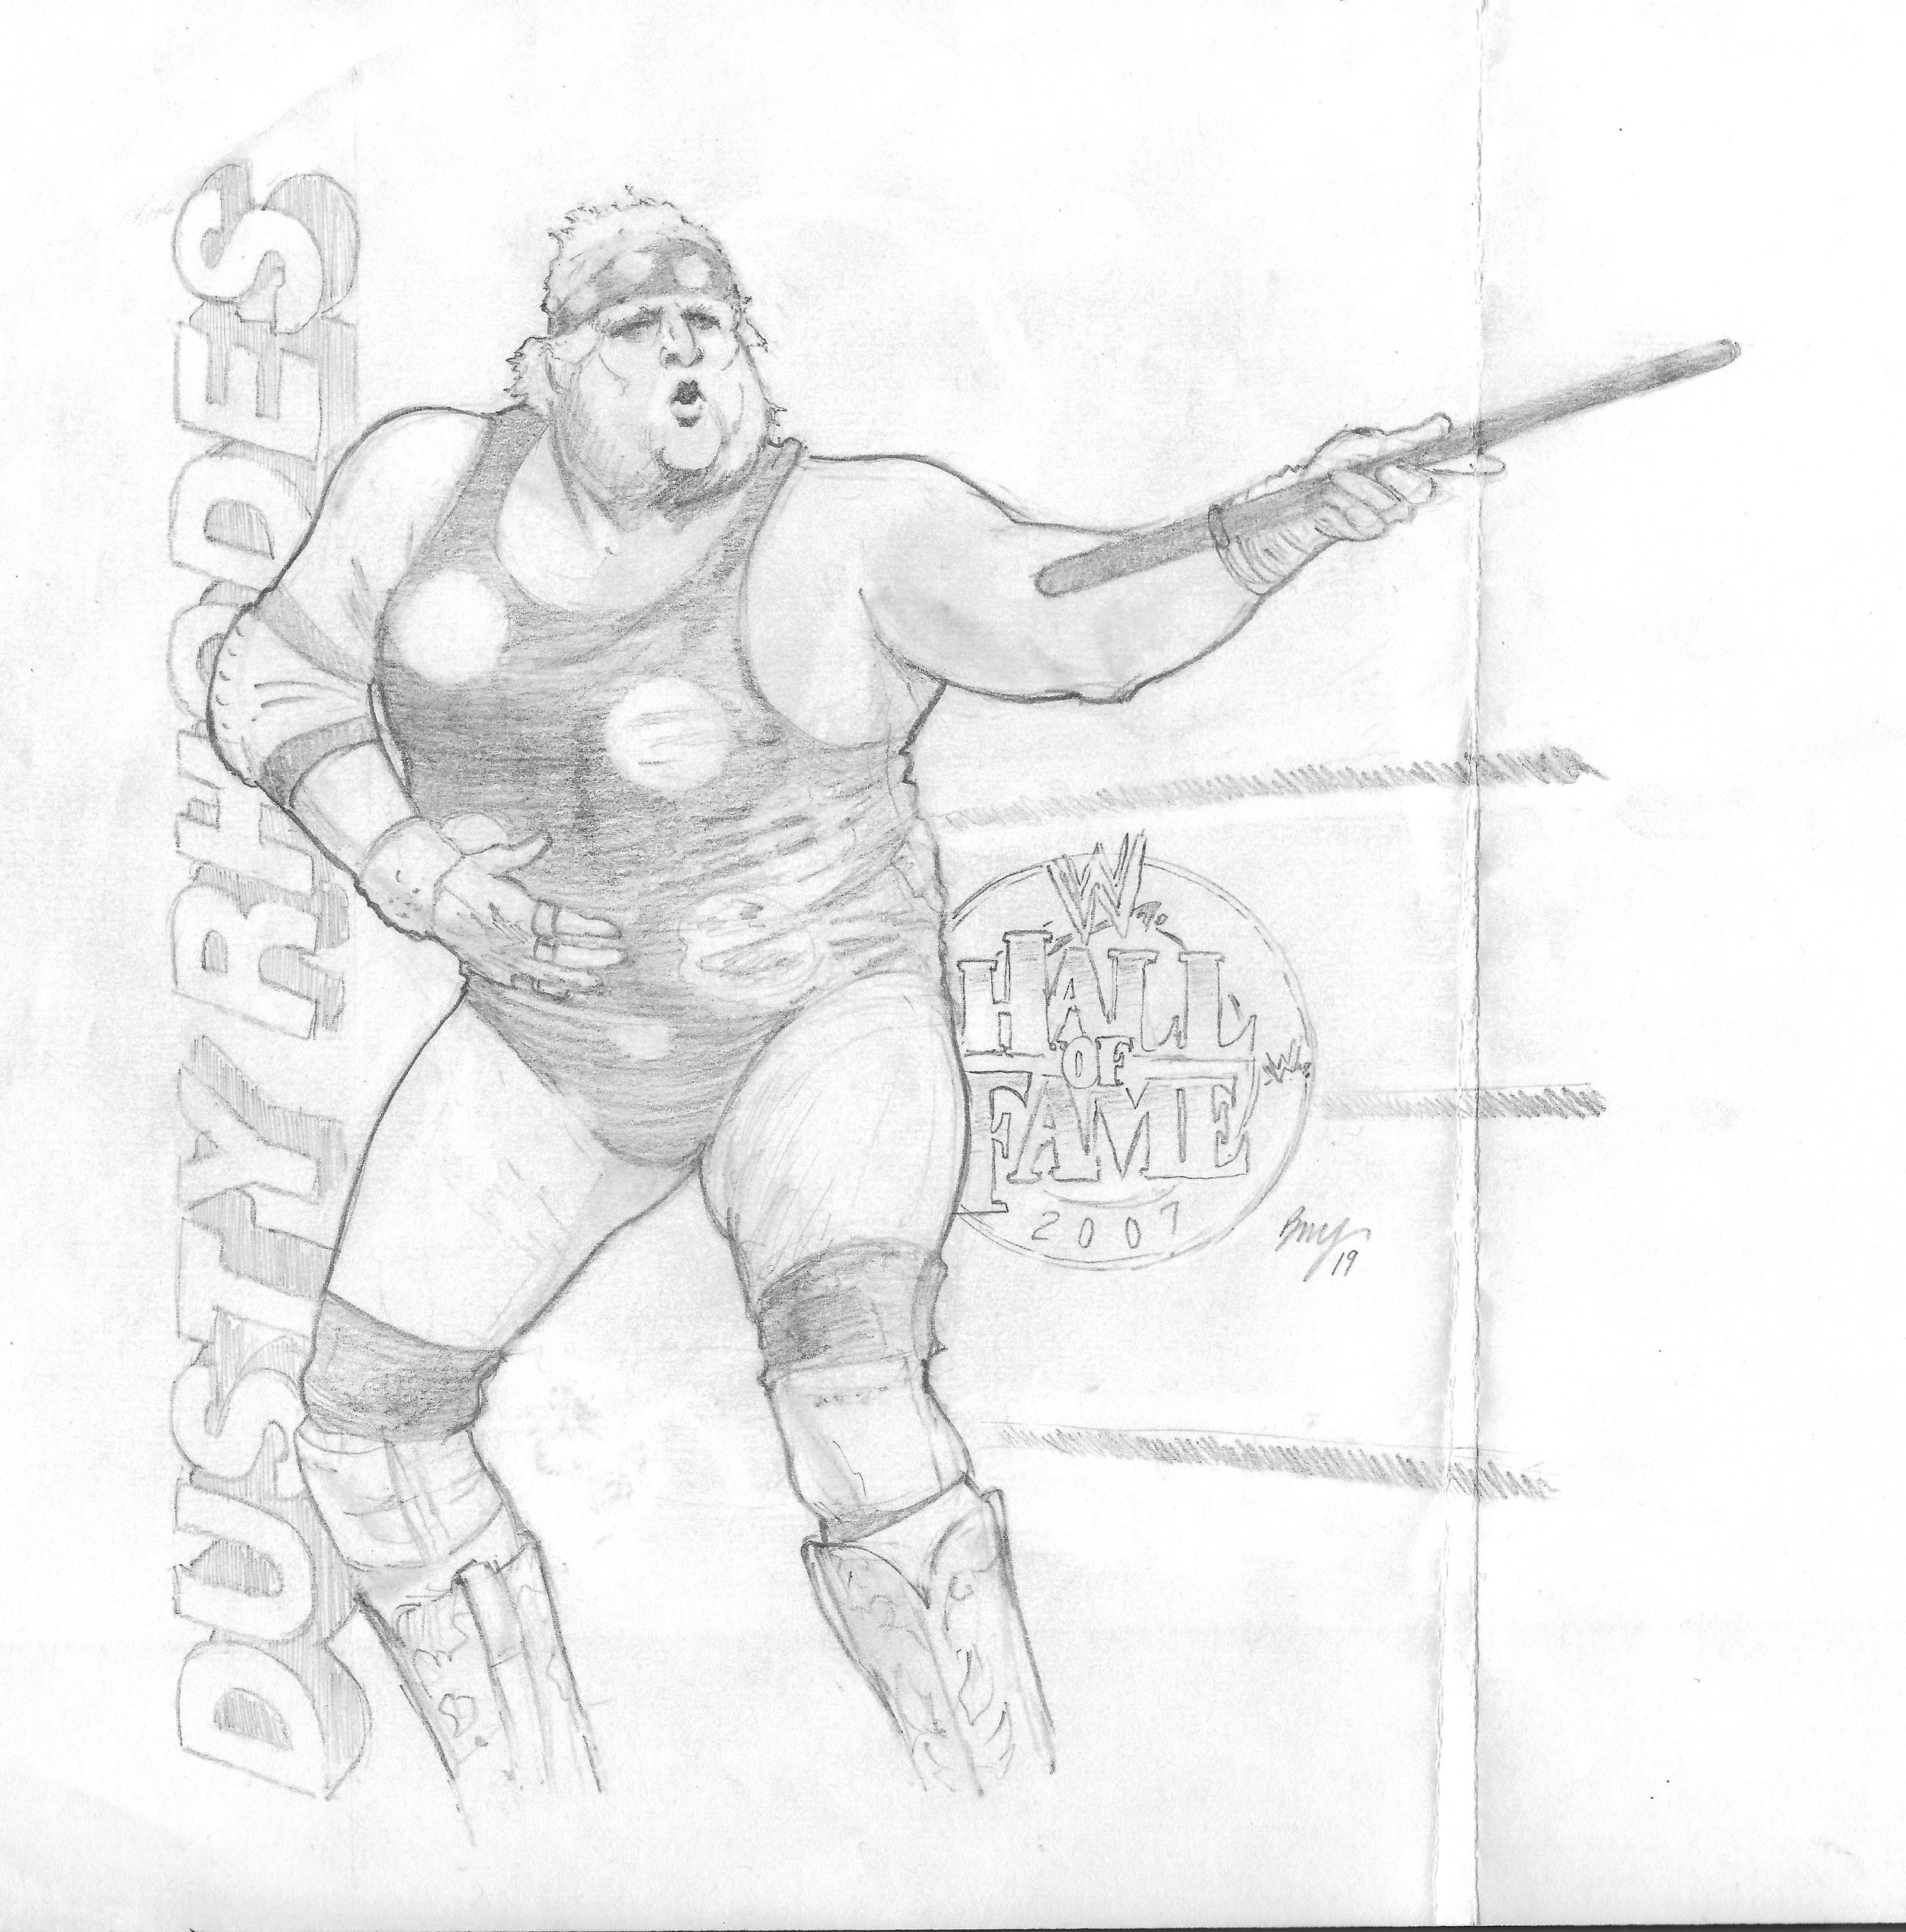 """WWE's Dusty Rhodes , """"The American Dream"""" - 2007 WWE Hall of Fame Inductee  Paper - Multi-use copy paper  Size - 8.5'"""" x 9""""  Medium - HB Pencil ; Eraser - Stick ; Blending Stump"""